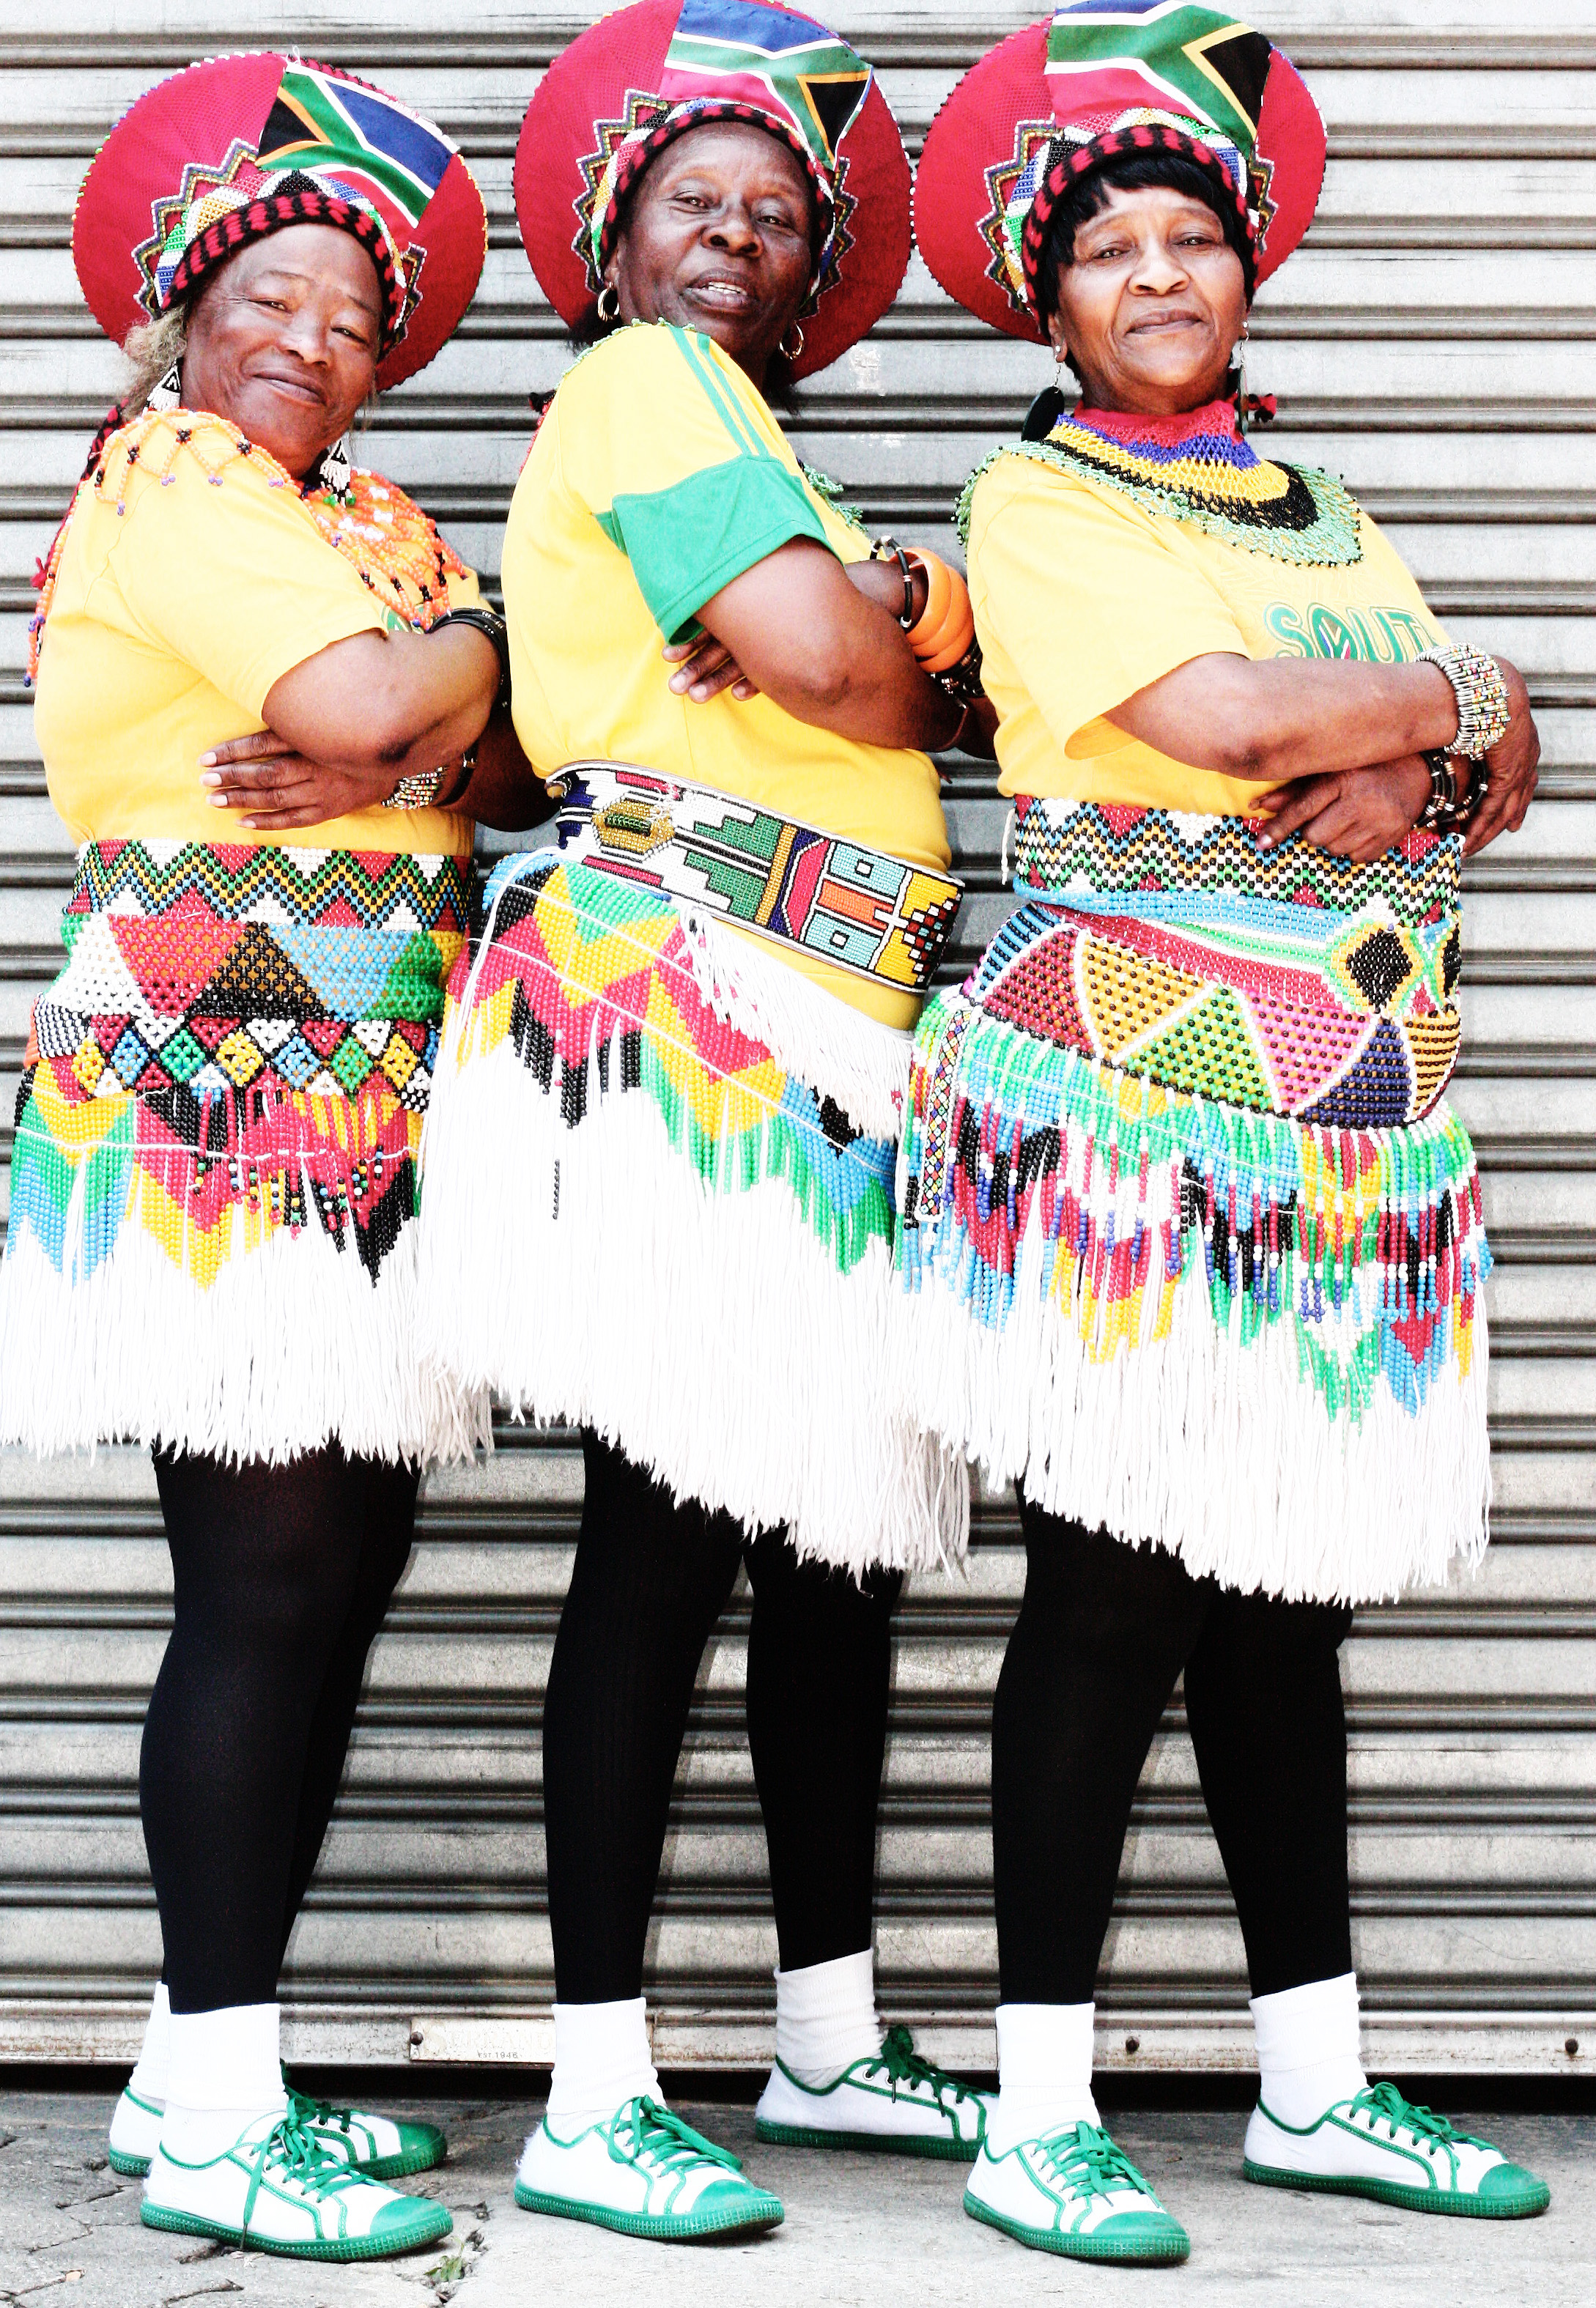 The Mahotella Queens copyright Griot GmbH